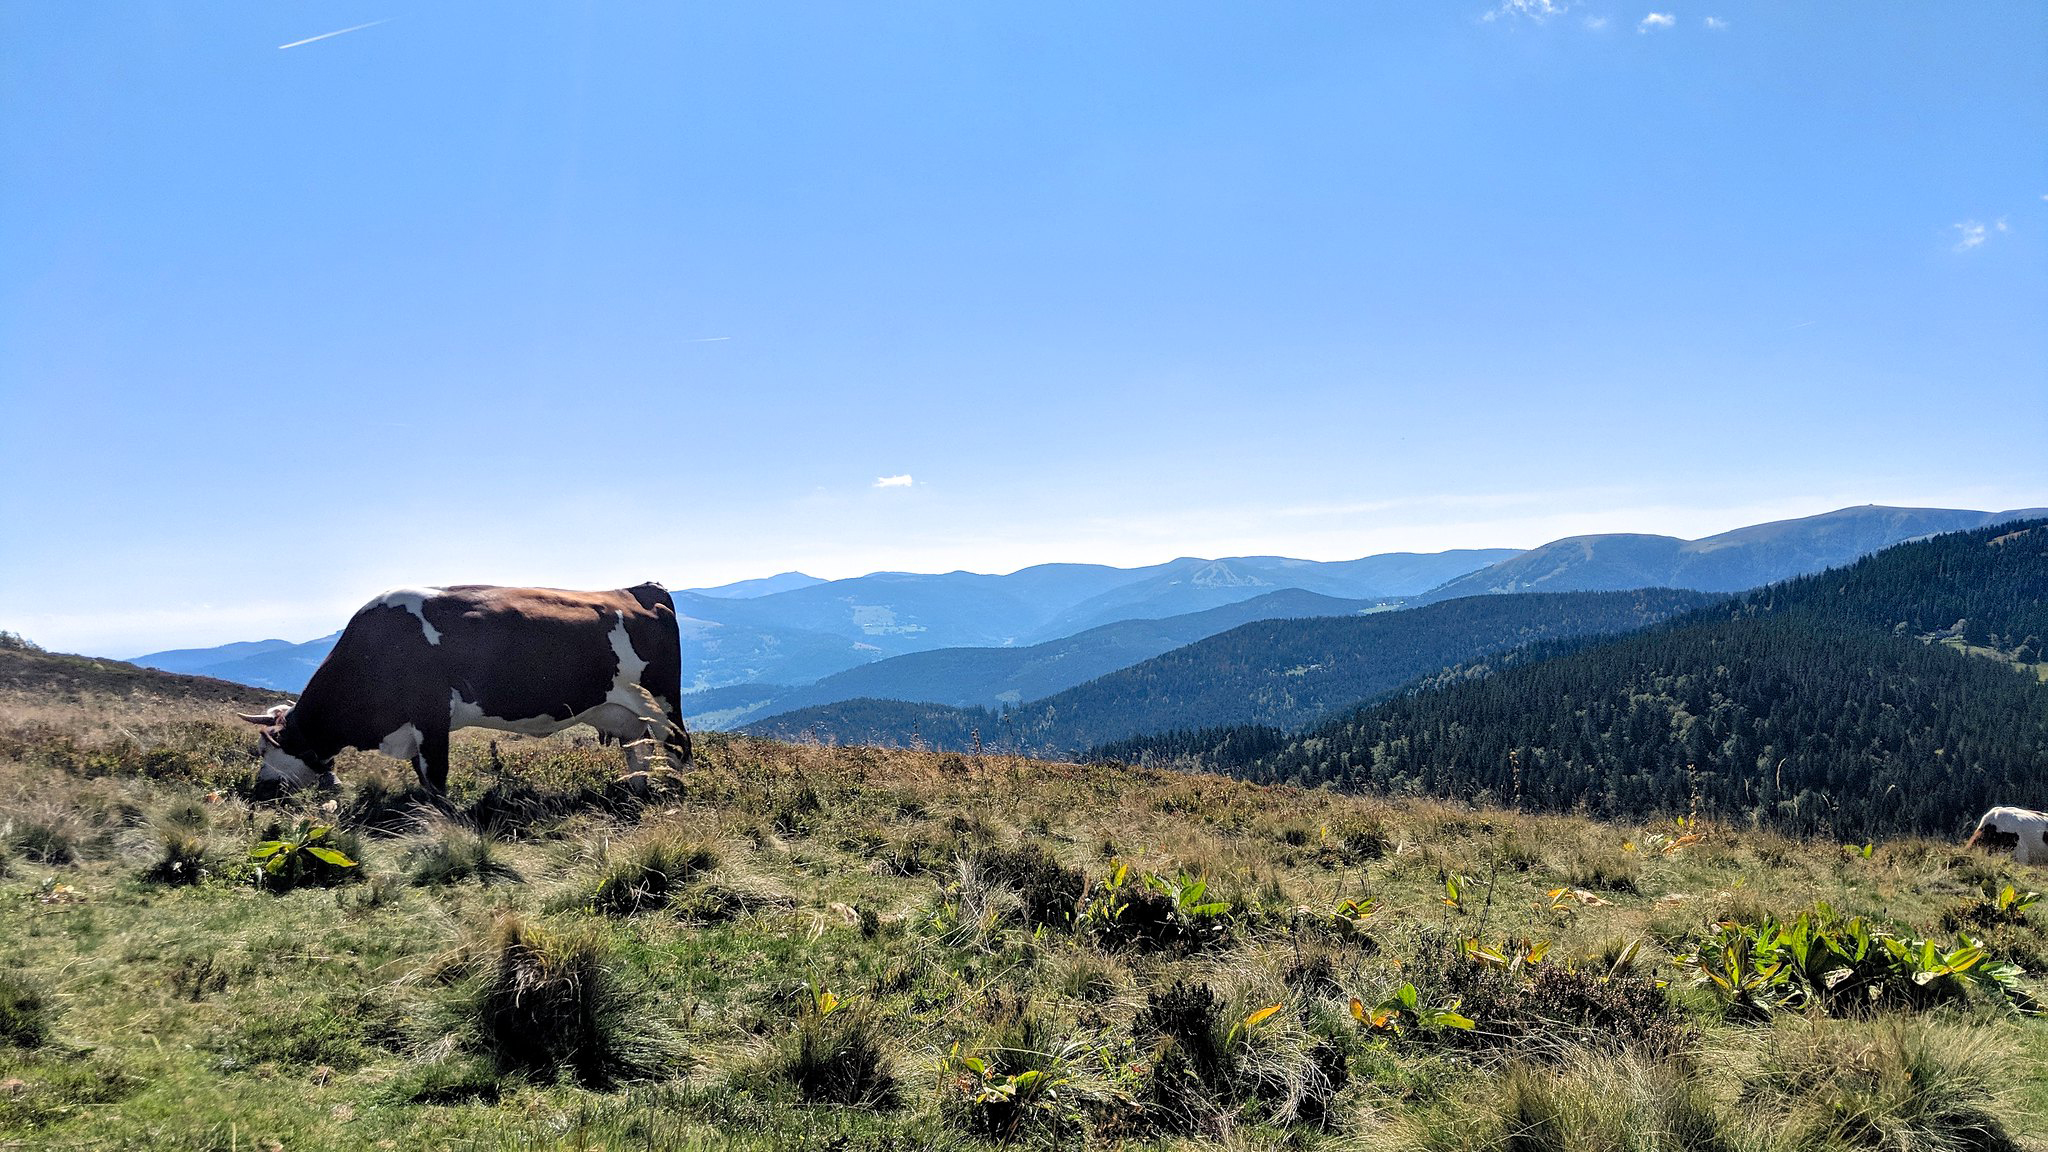 Cow grazing in the Vosges Mountains, which face onto the Swiss Alps